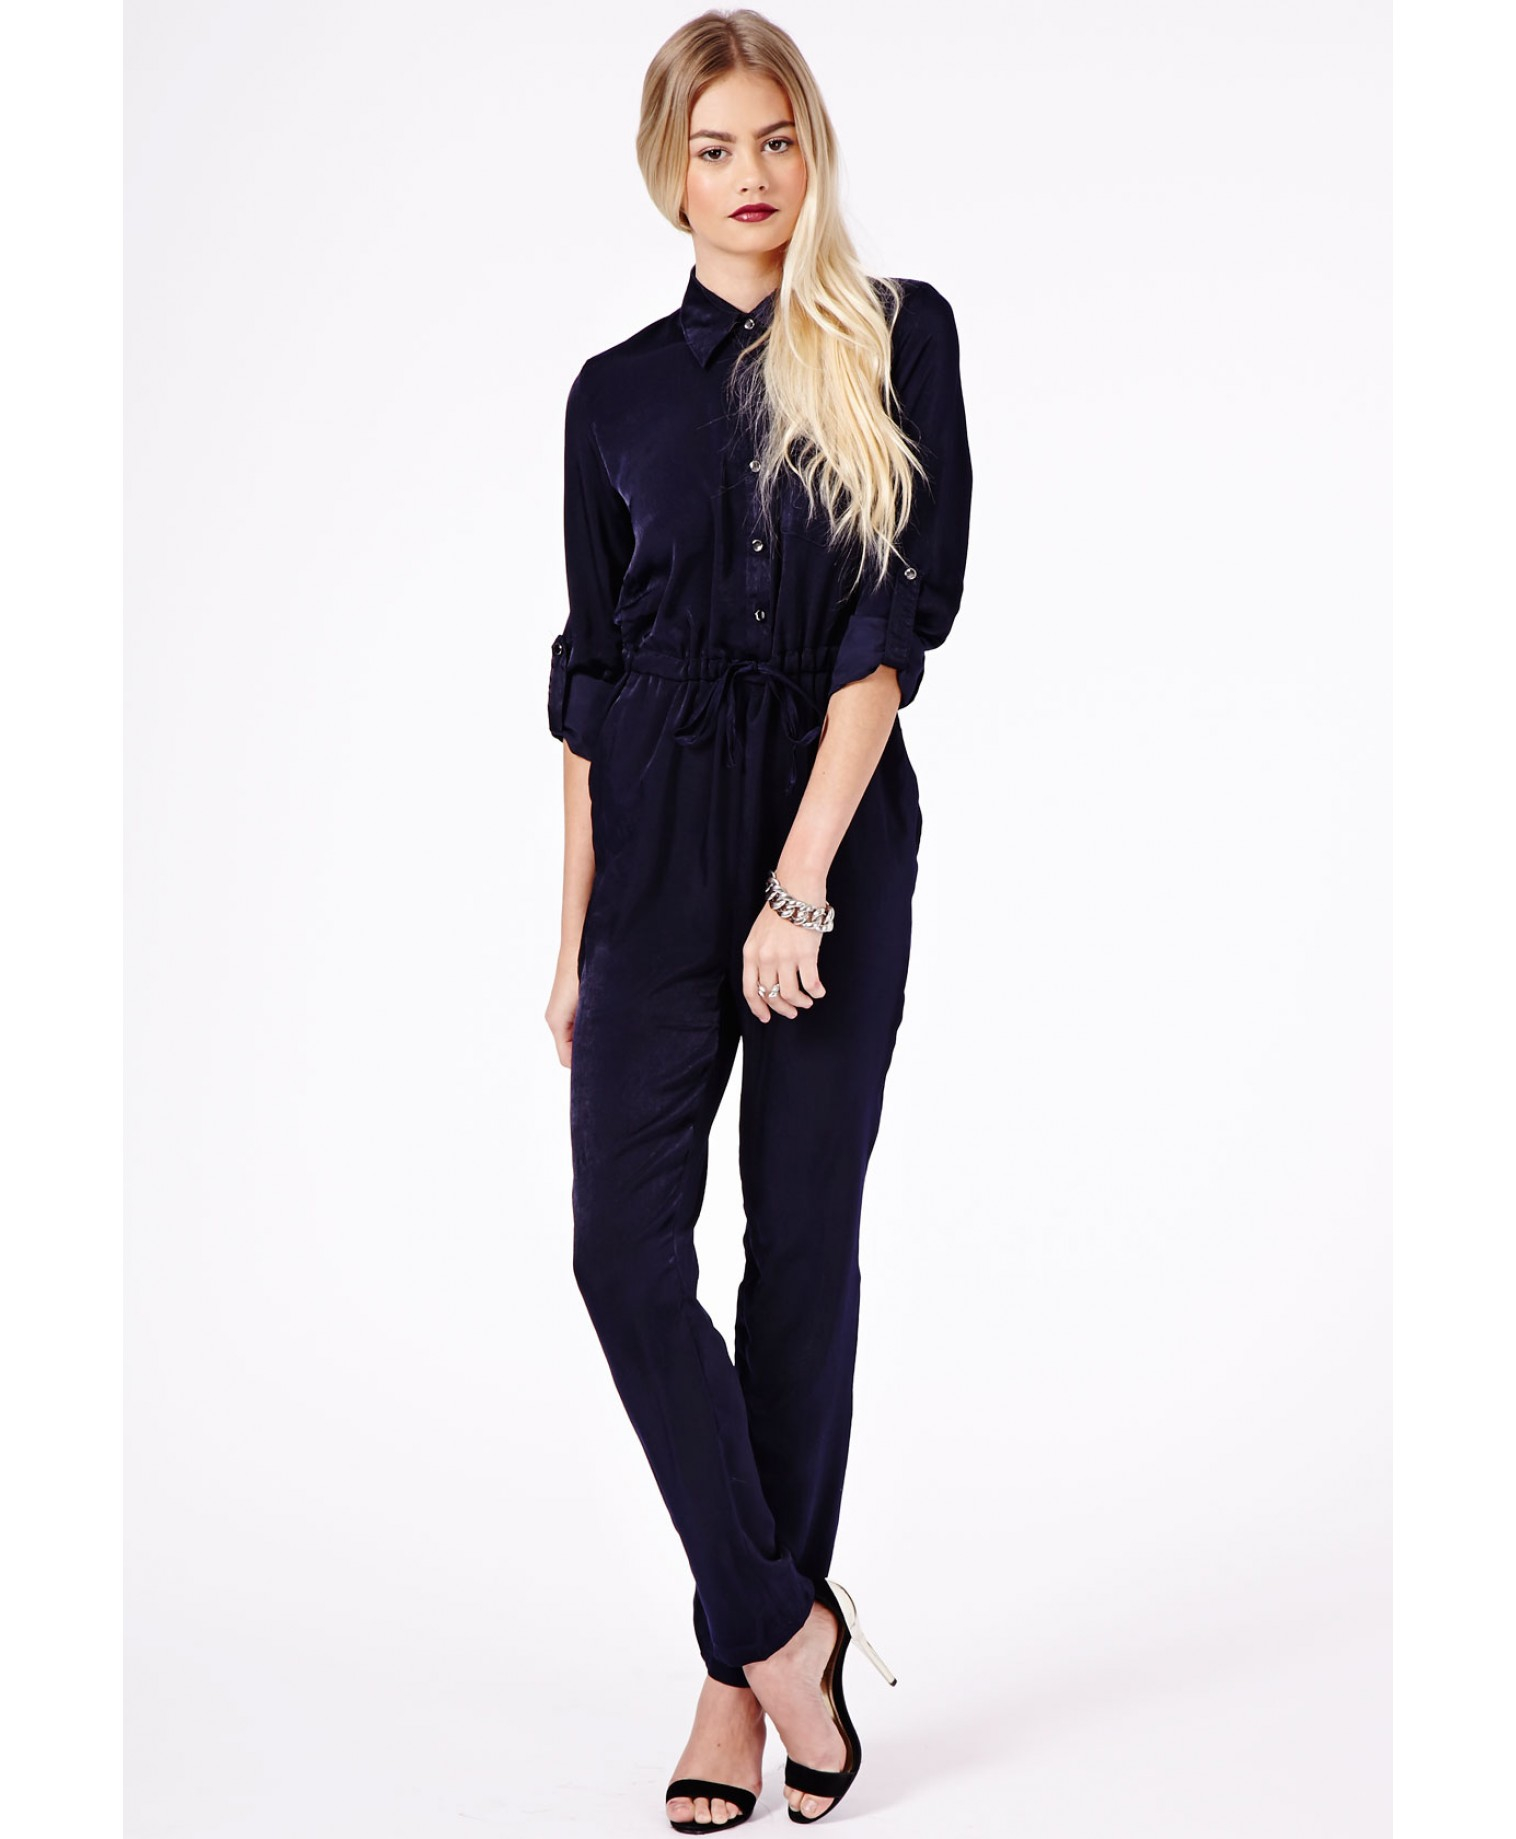 a02b2d3a936 Missguided Aleida Silk Feel Shirt Jumpsuit in Navy in Blue - Lyst